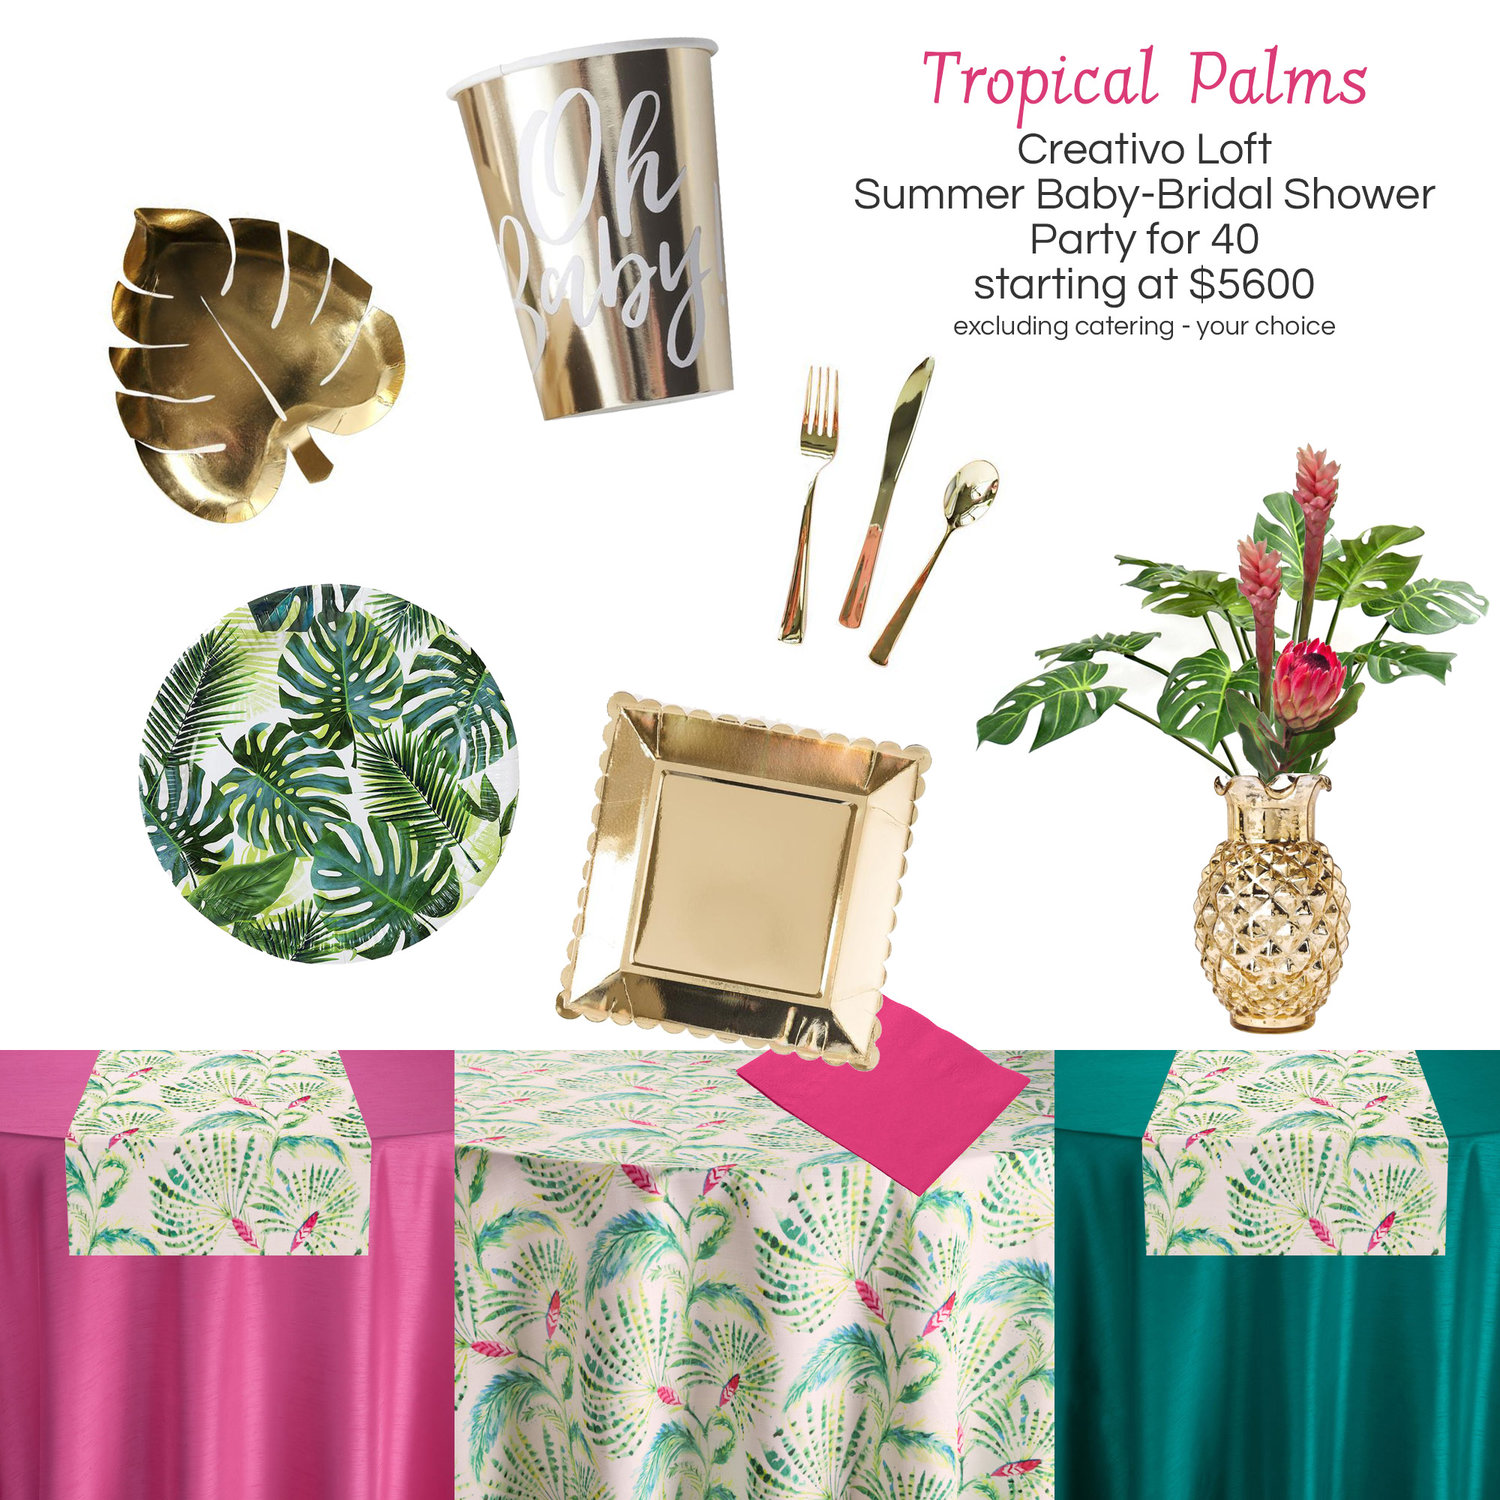 special package tropical palms summer shower creativo loft